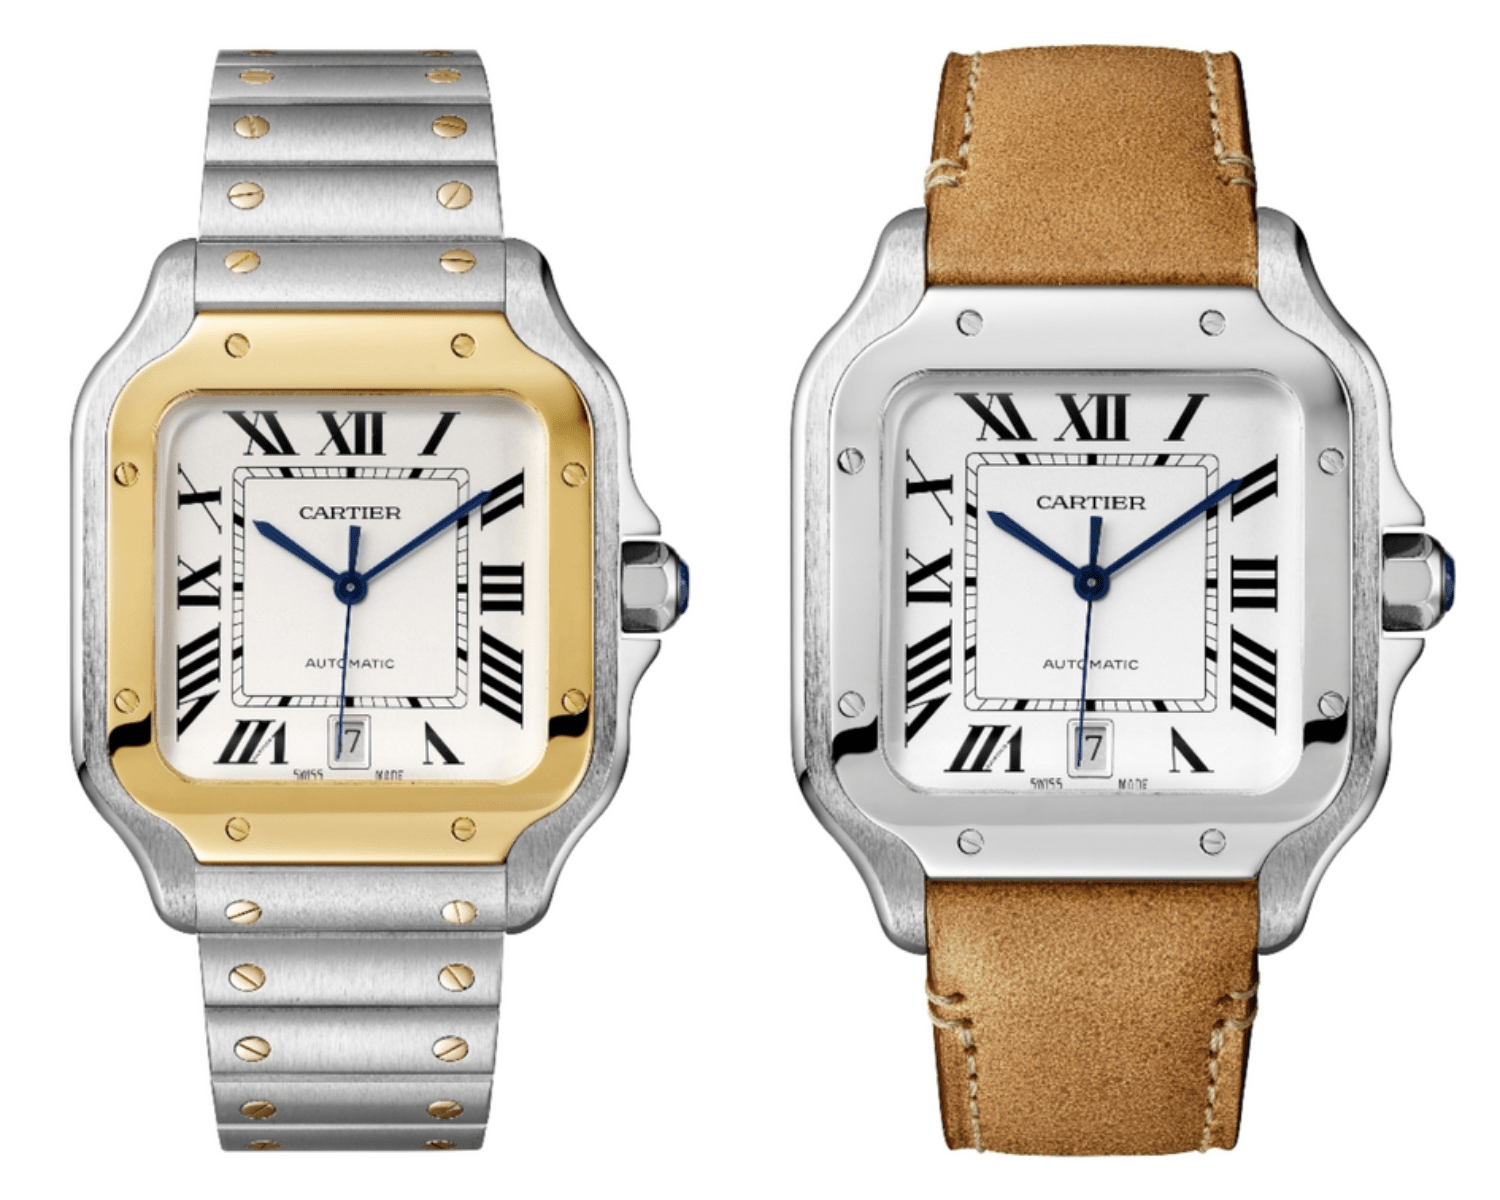 Santos de Cartier in gold with bracelet and Santos de Cartier in steel with bracelet. (Photo: Cartier)